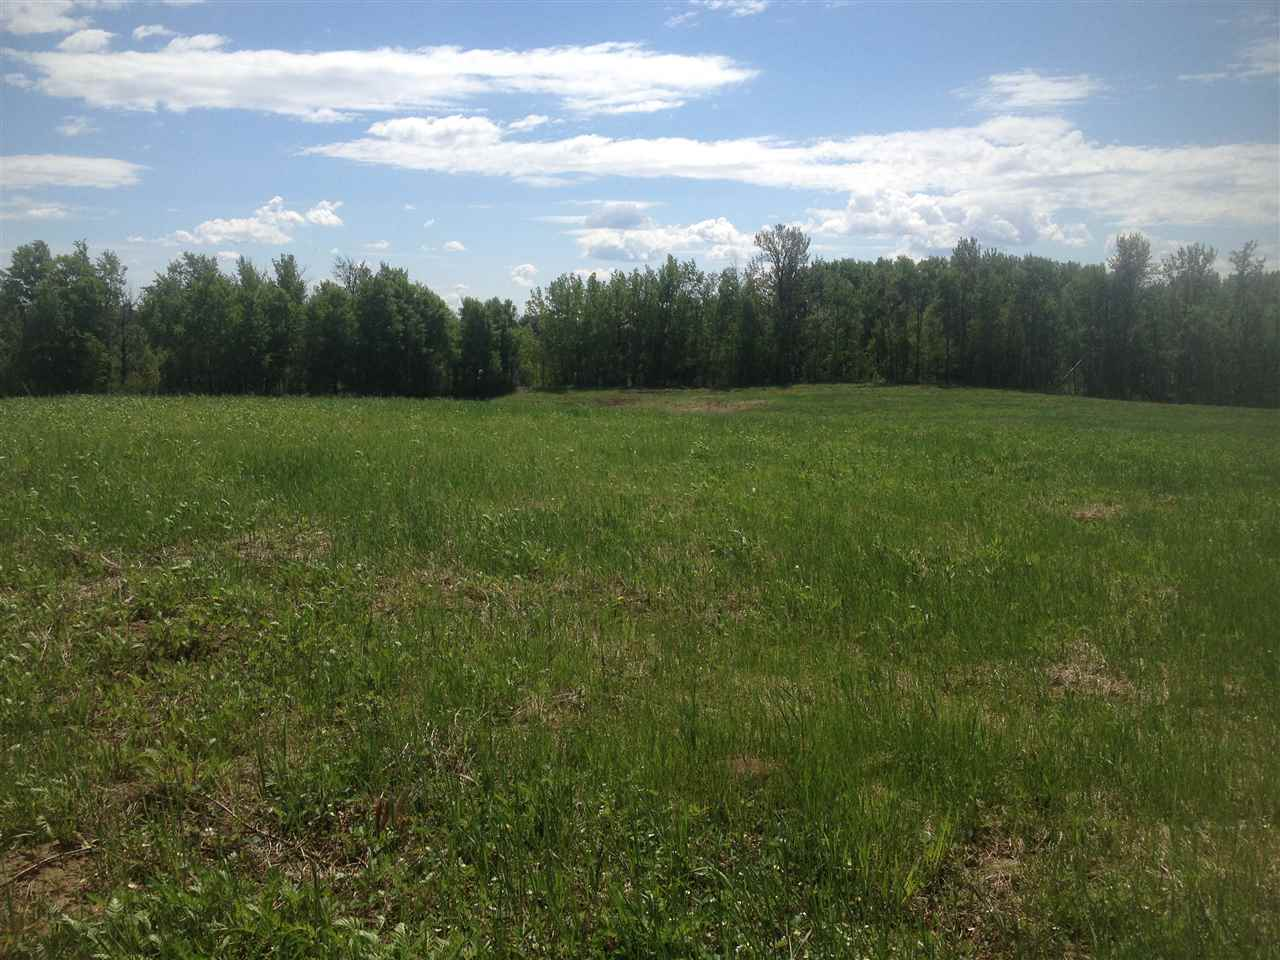 Photo 11: 52502 Range Road 22A: Rural Parkland County Rural Land/Vacant Lot for sale : MLS® # E4069524